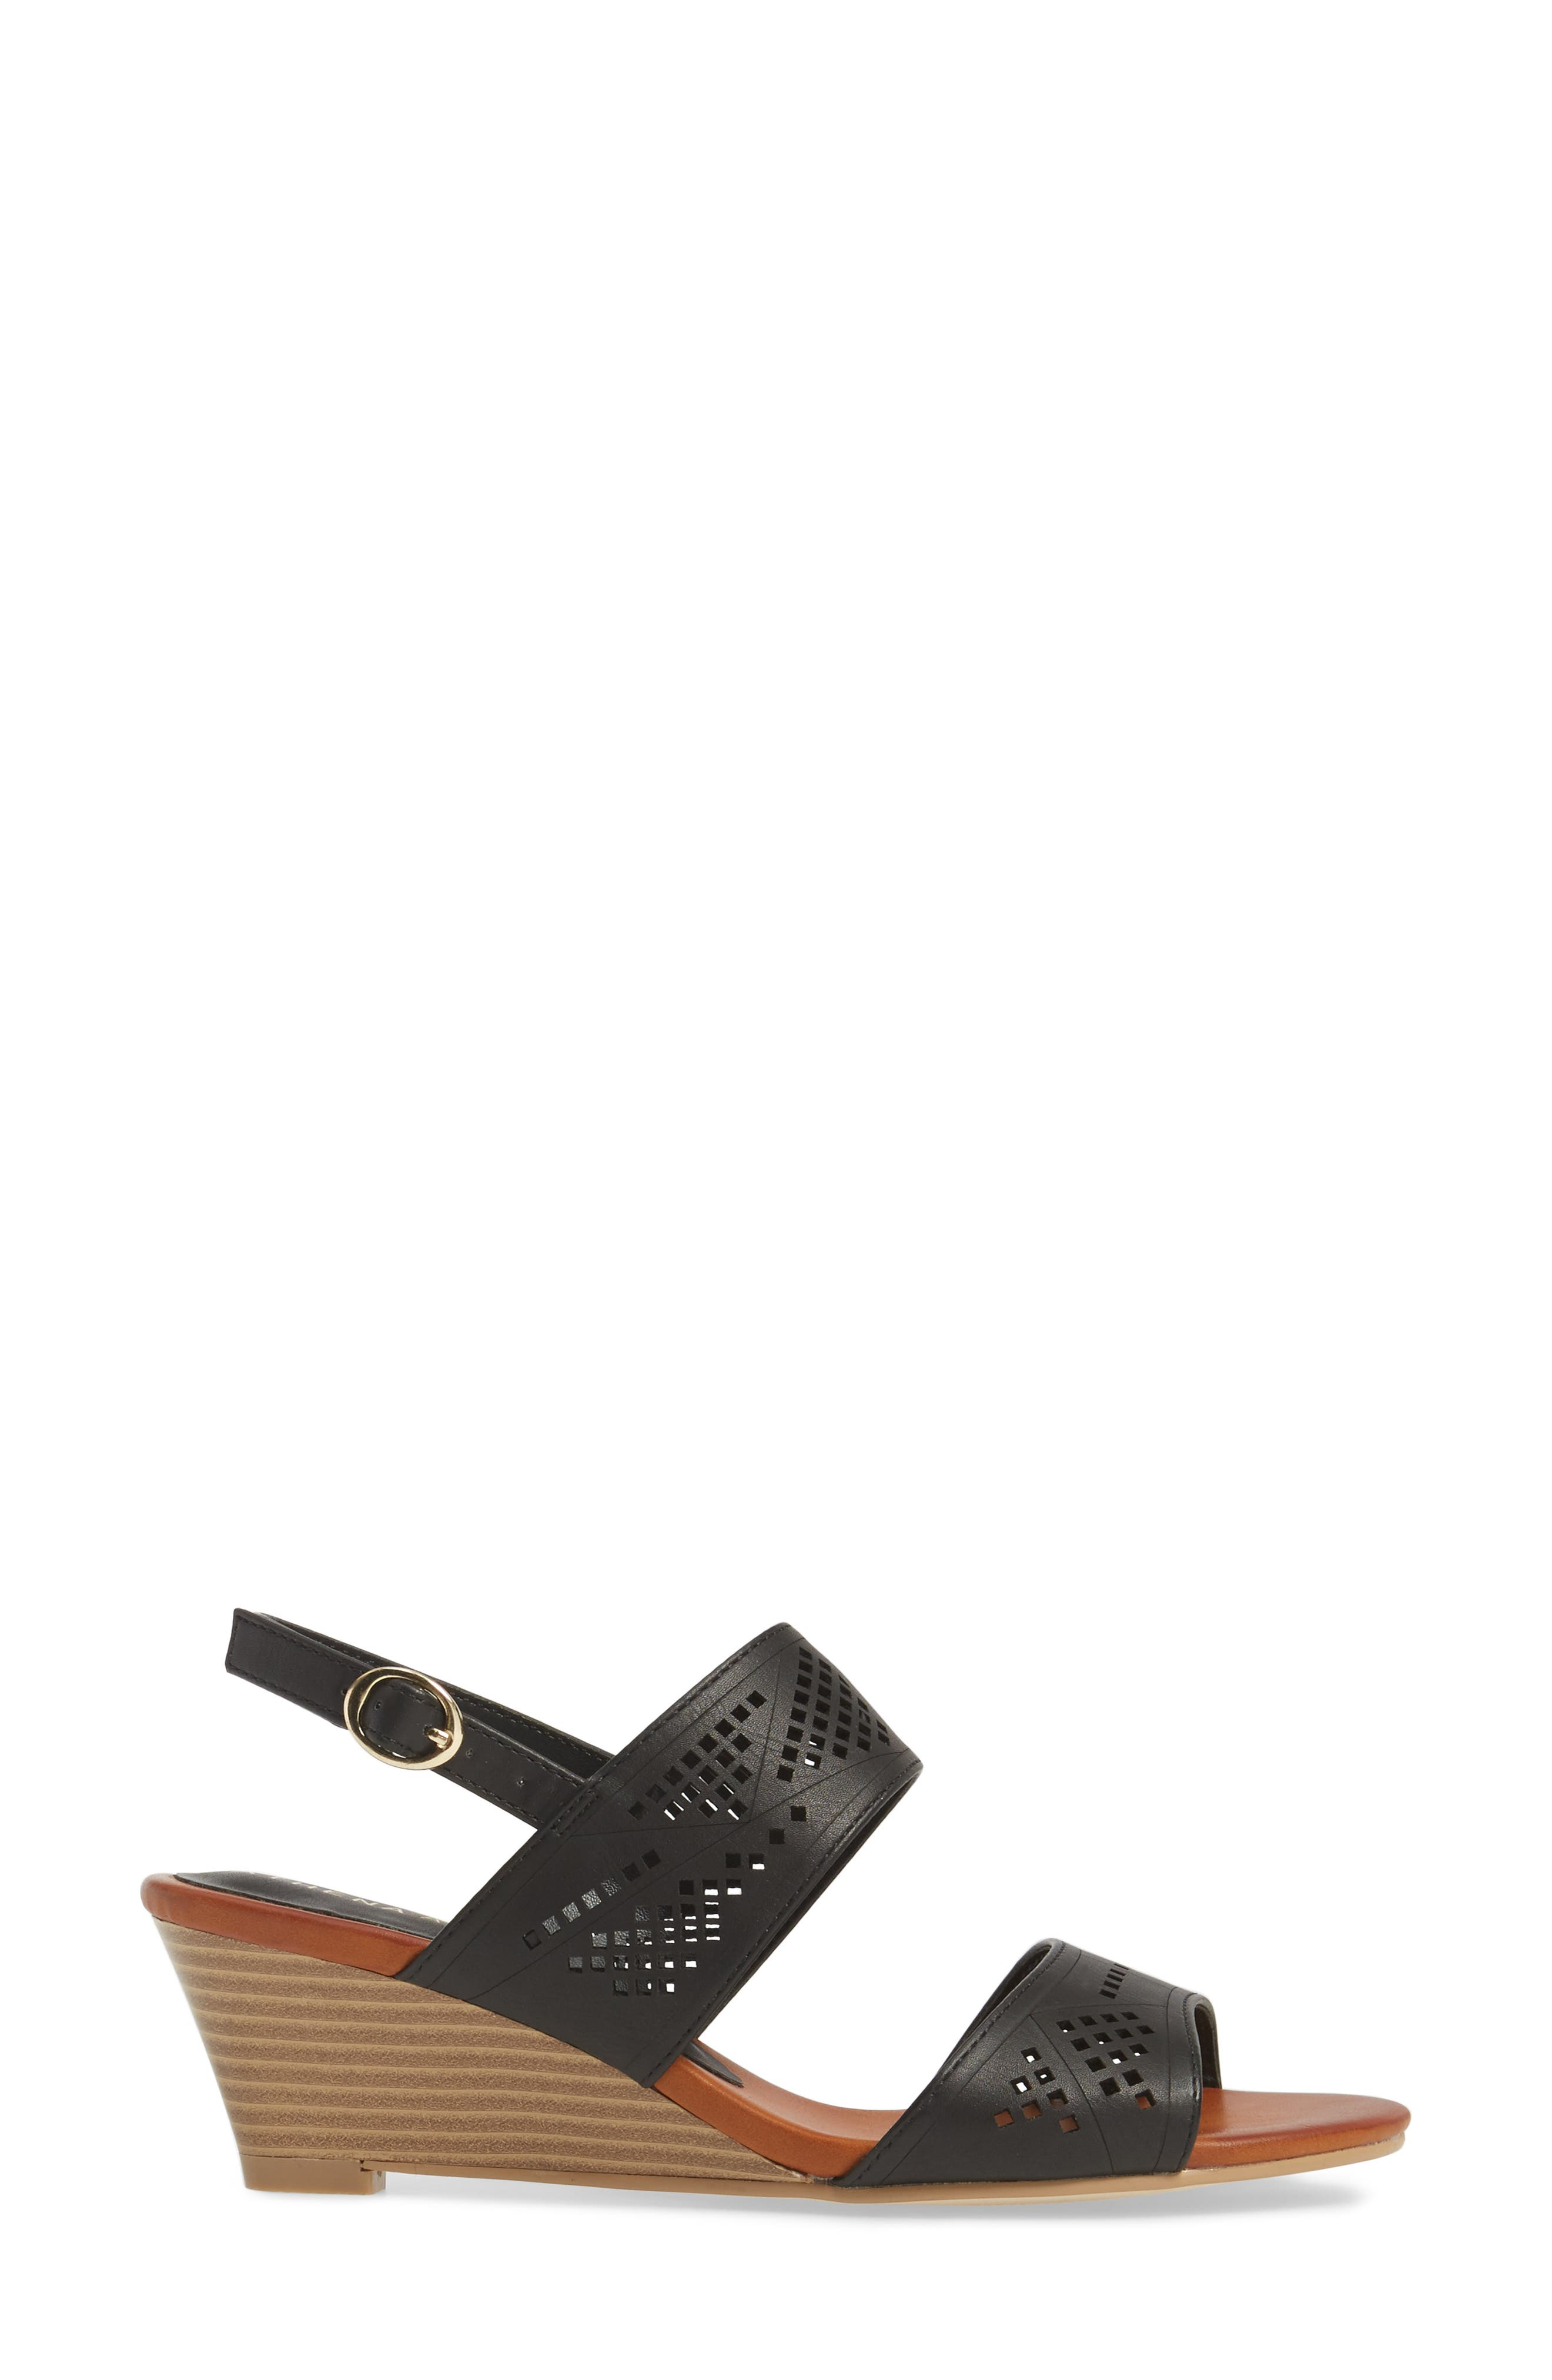 Alternate Image 3  - Athena Alexander Sparce Perforated Wedge Sandal (Women)